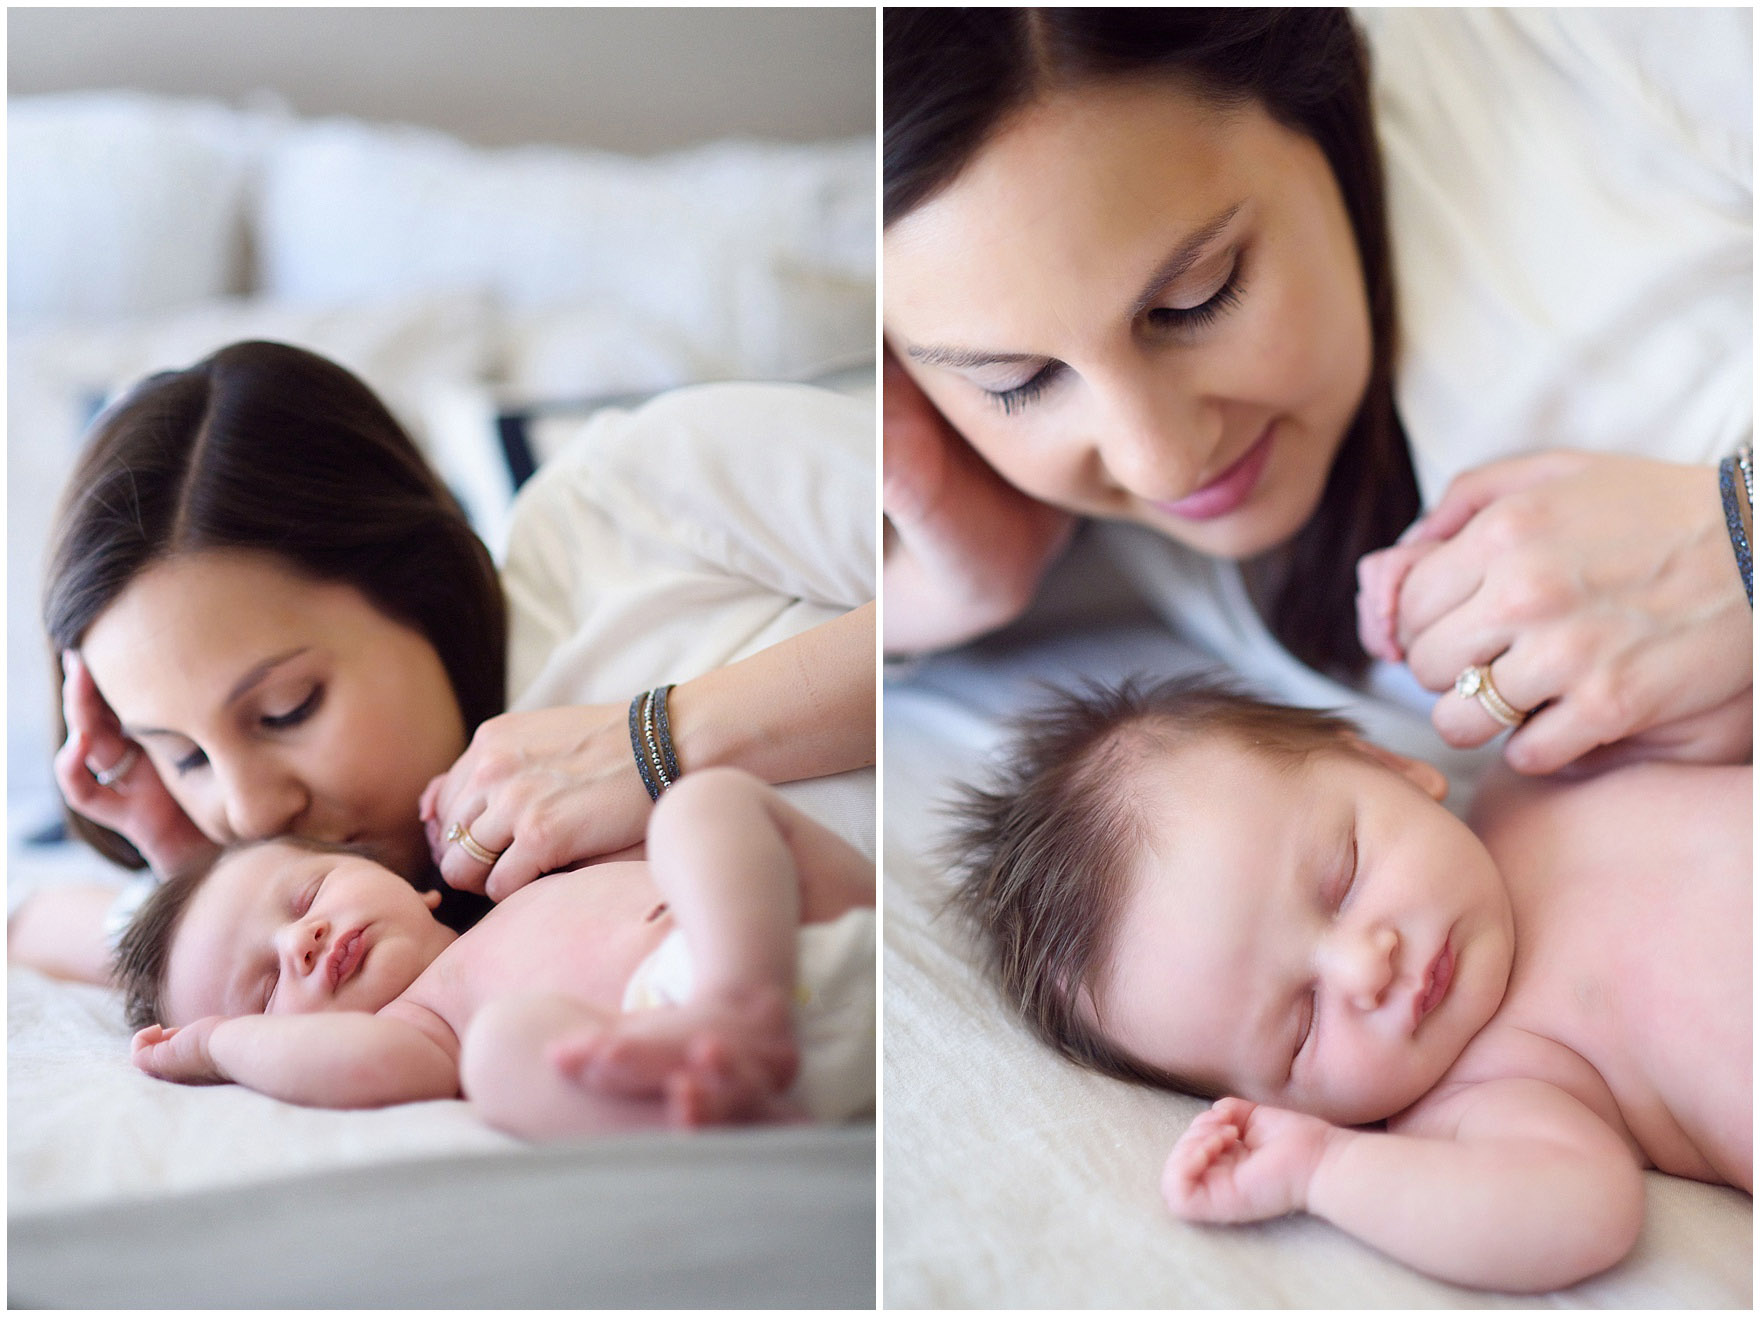 Portraits of a new mother gazing at her sleeping baby during a Chicago newborn baby photography session.